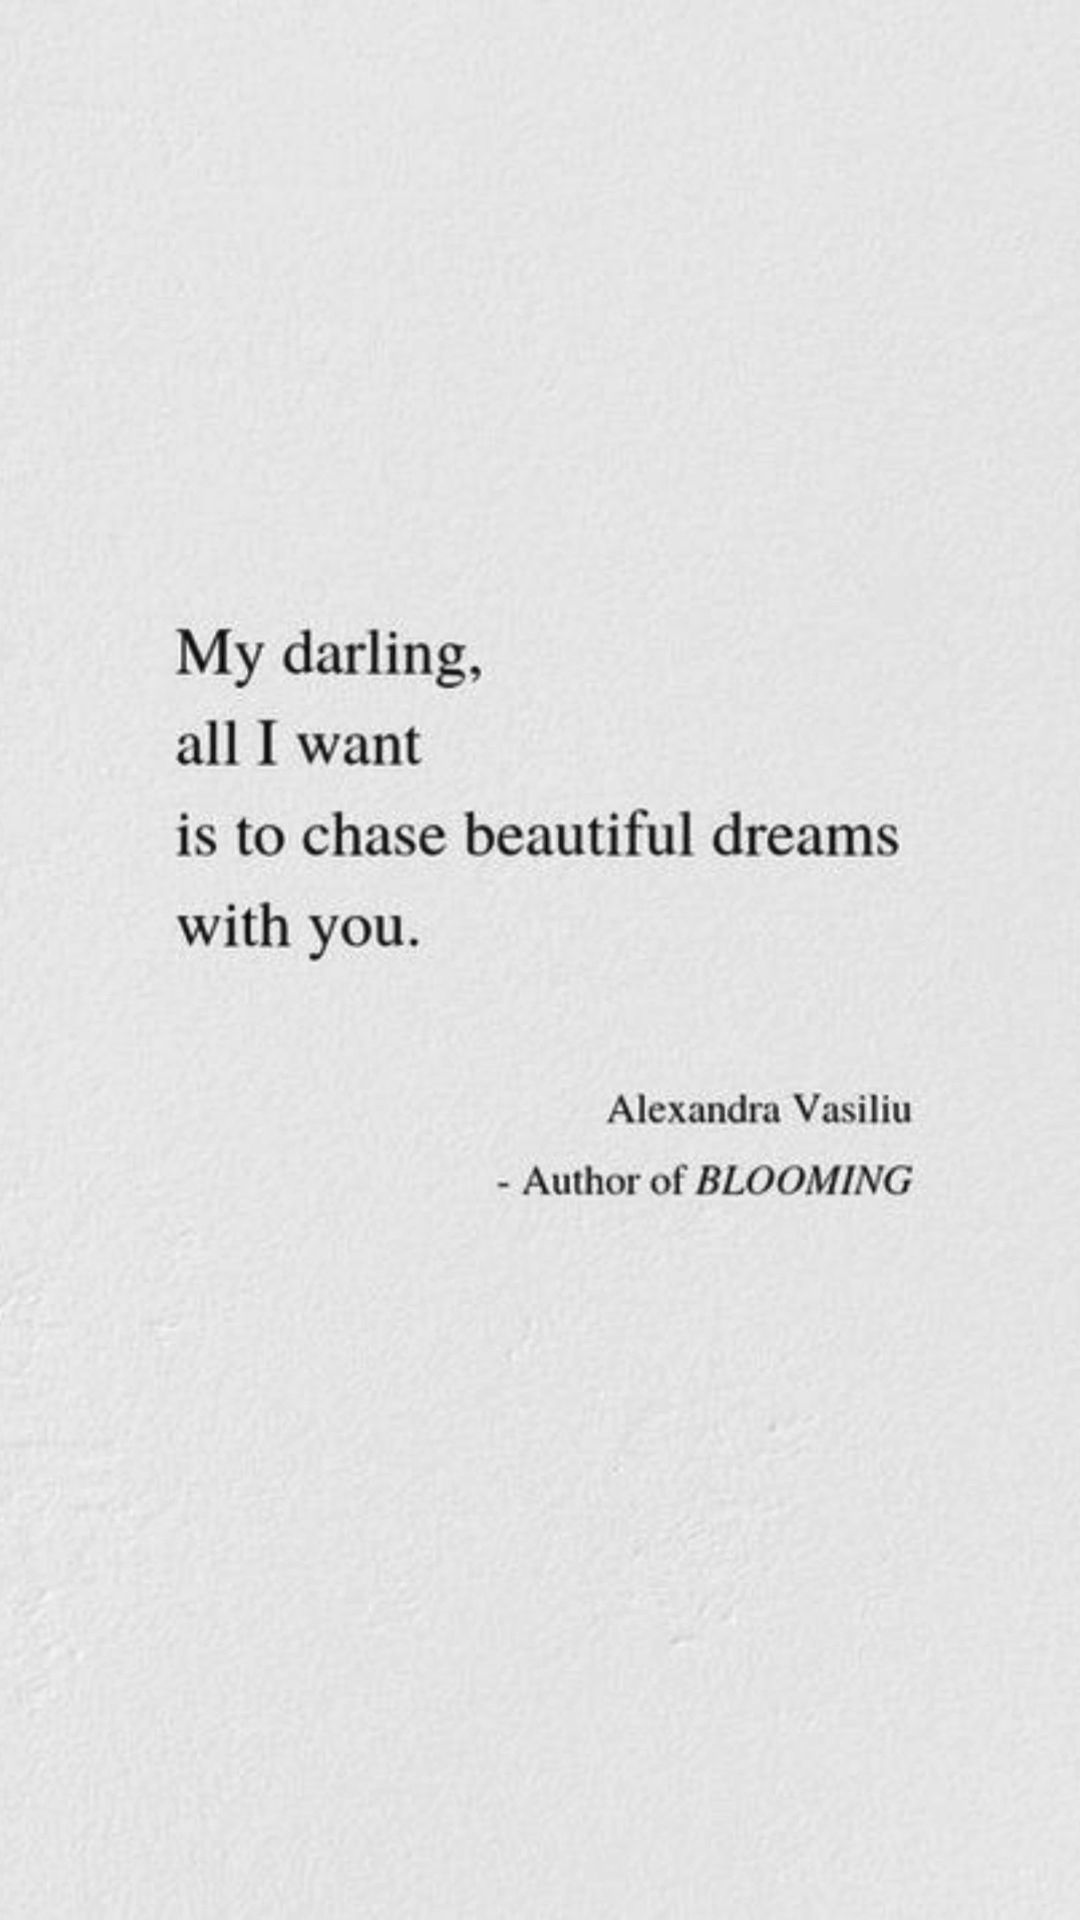 A POETRY QUOTE COLLECTION